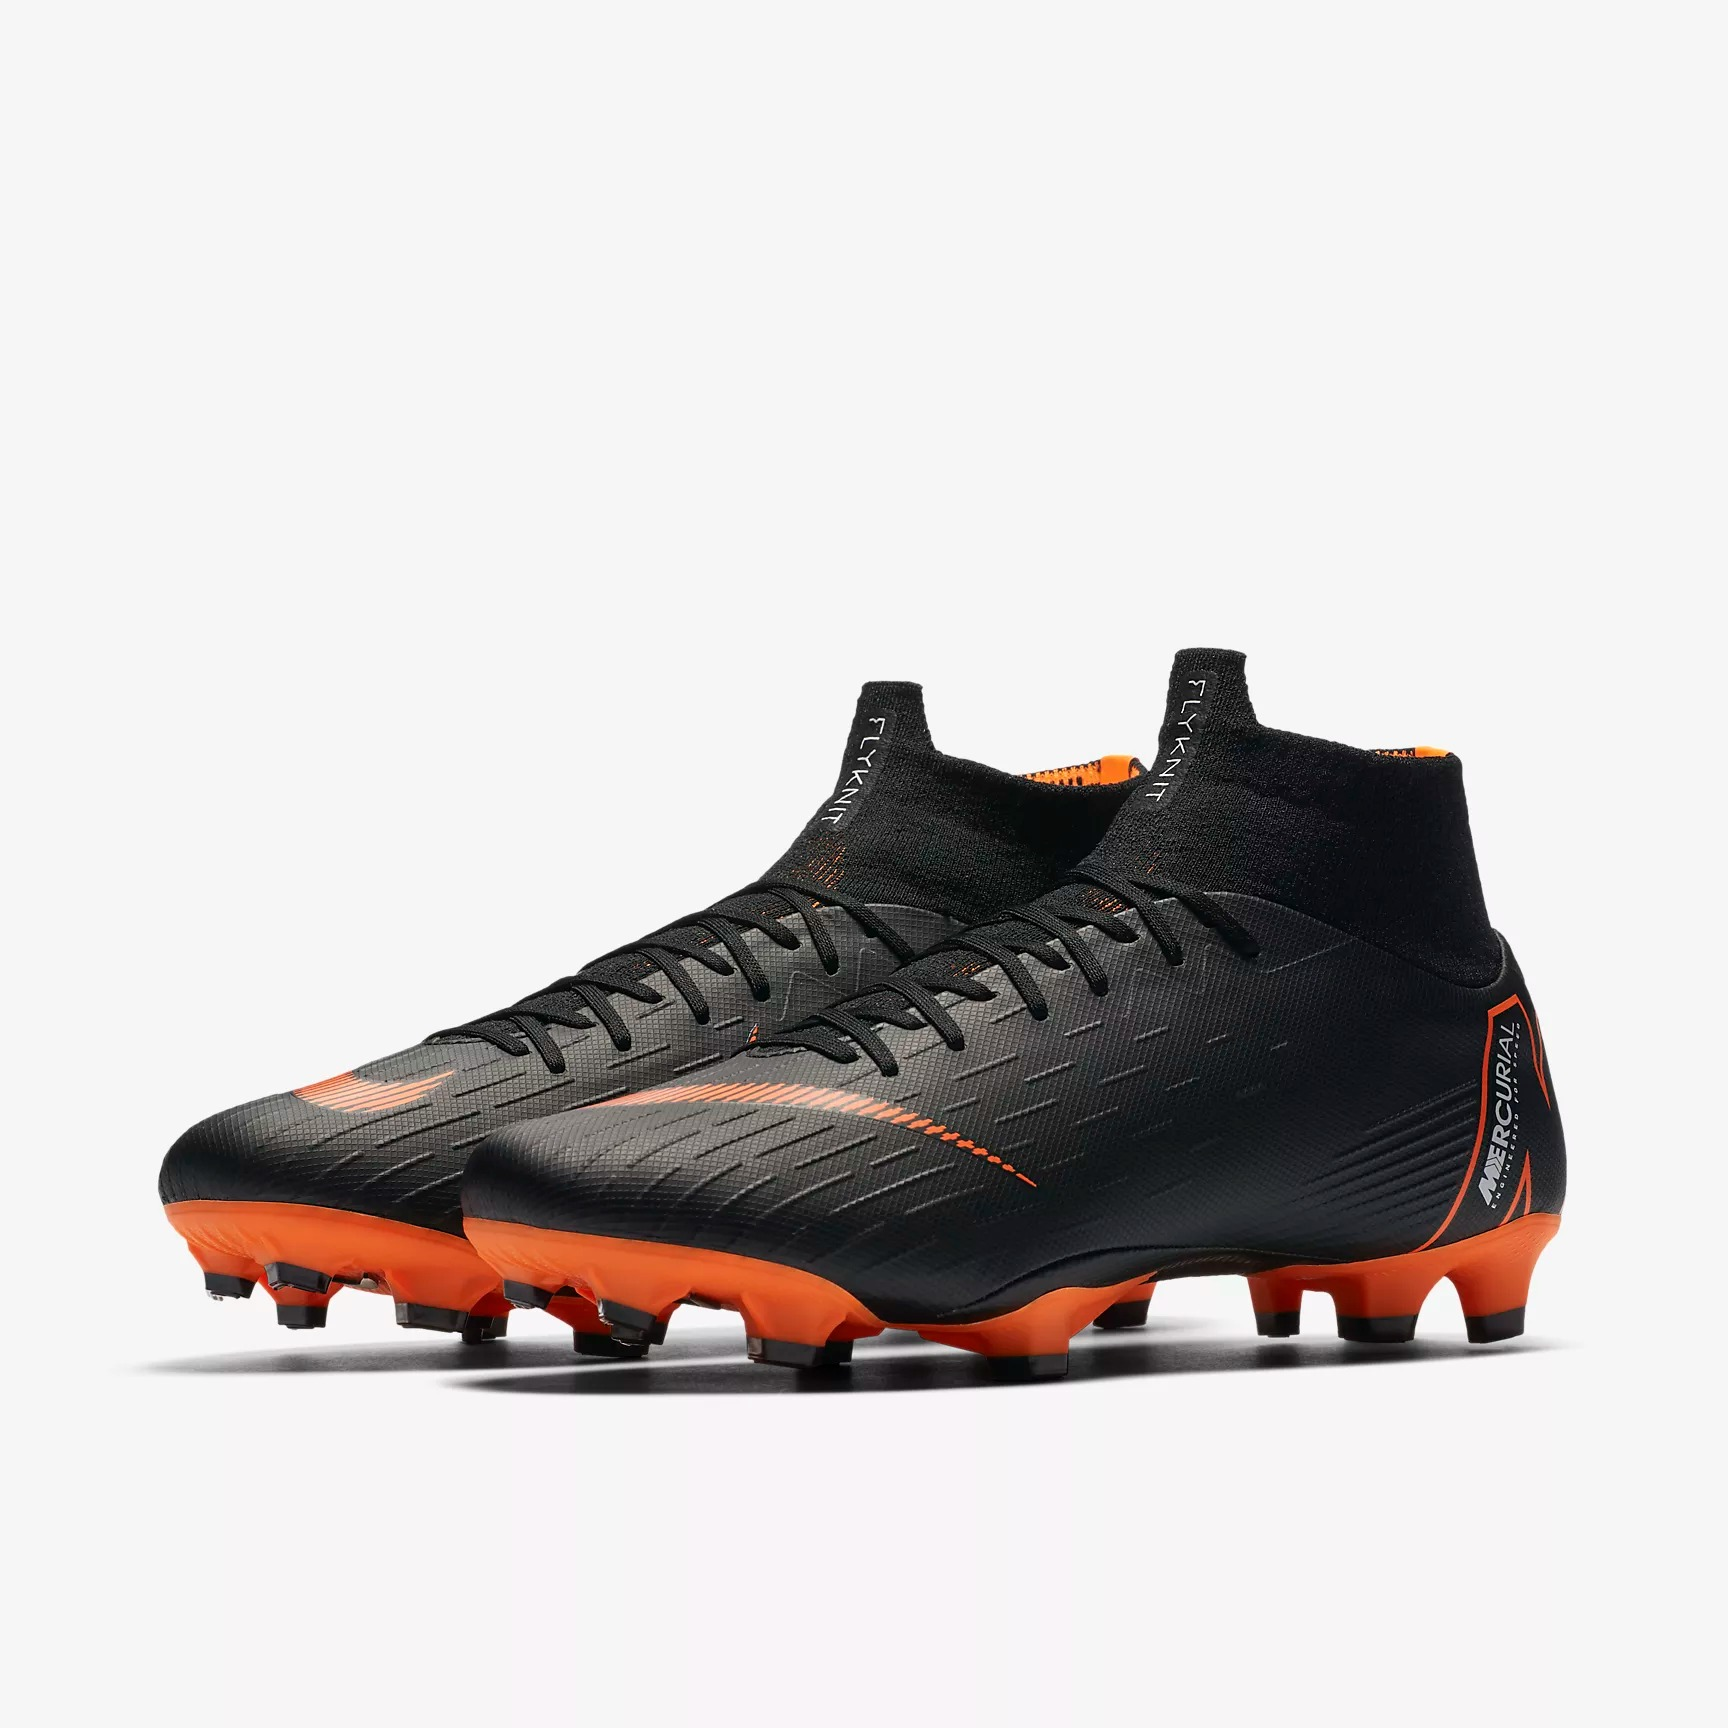 Nike Mercurial Superfly VI Pro FG Soccer Cleats - Soccer ...